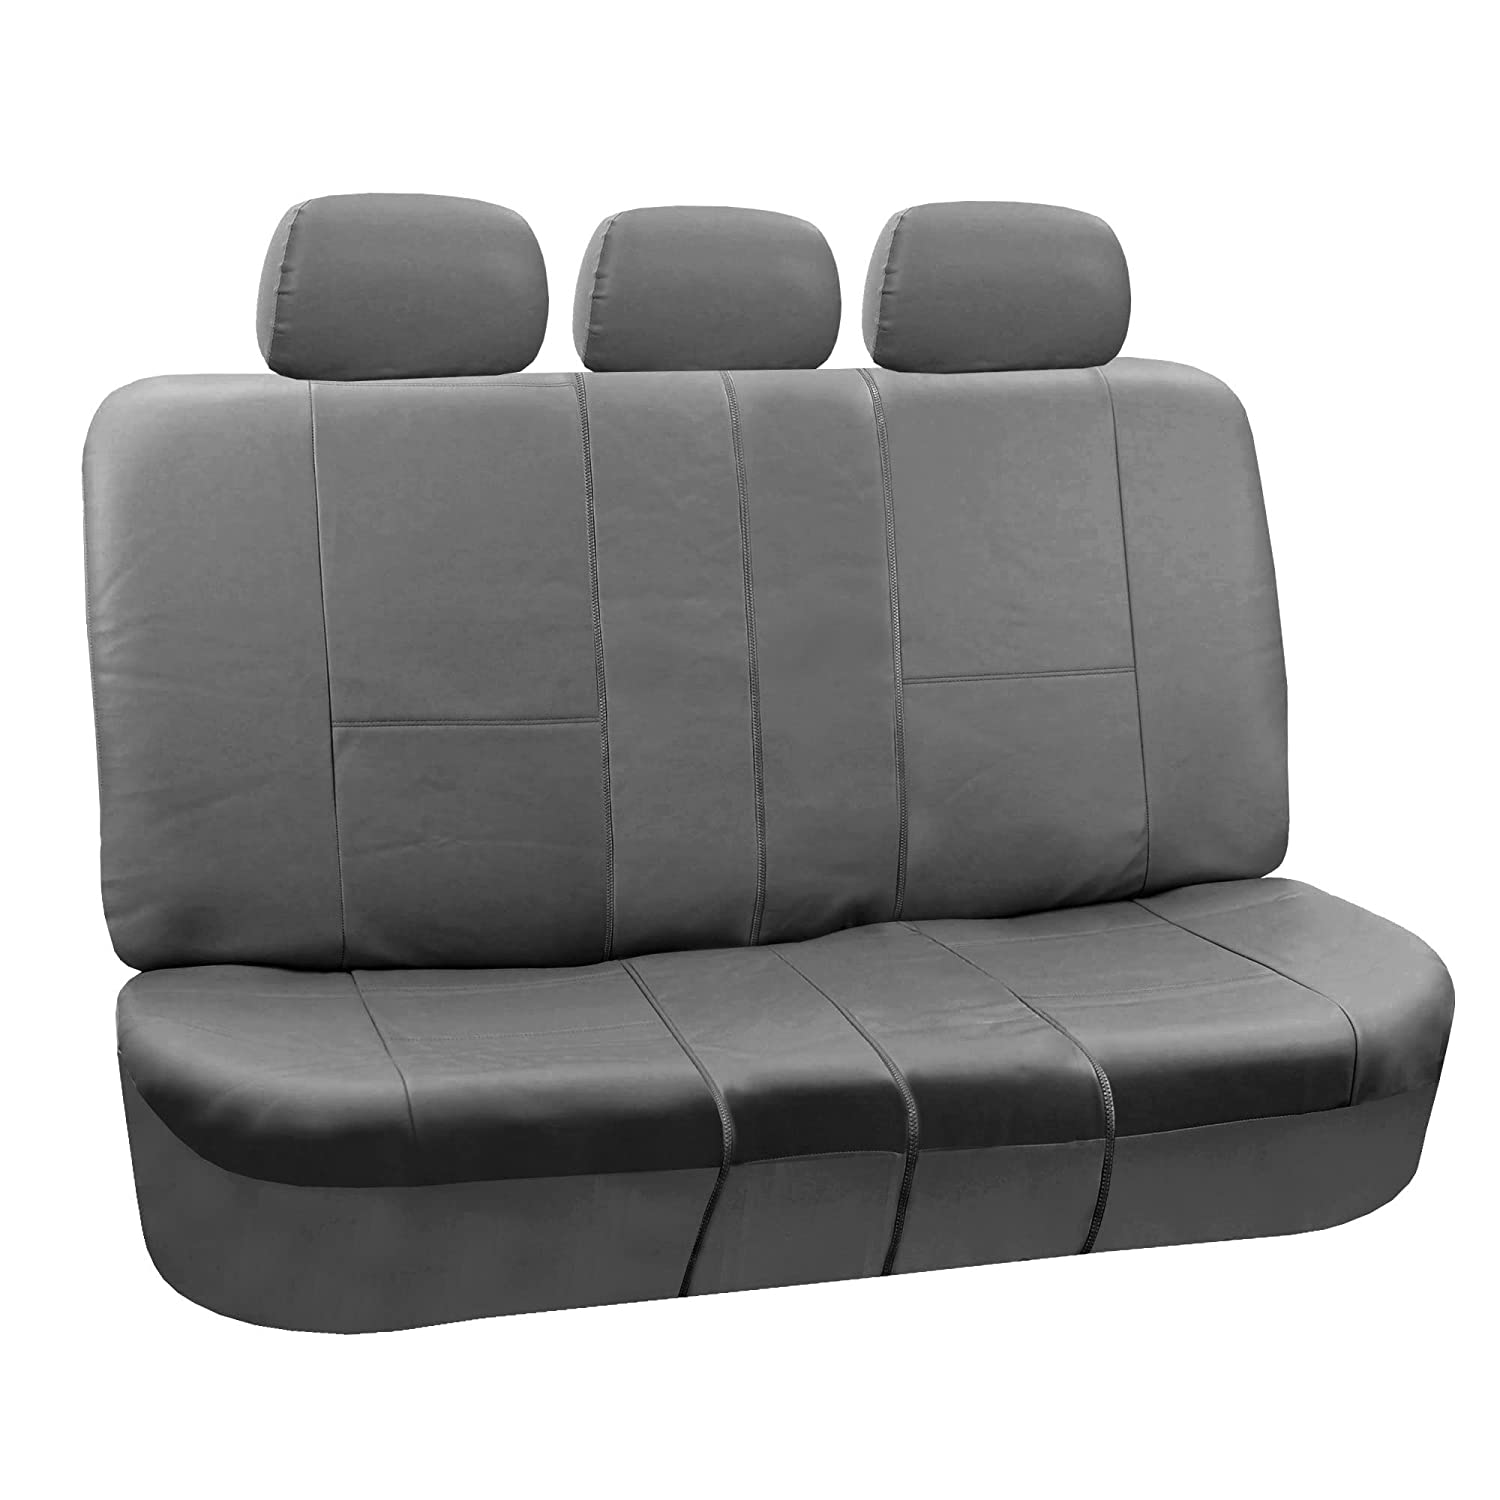 FH Group PU002TAN115  Beige Faux Leather Seat Cover Full Set Airbags Compatible and Split Bench Cover